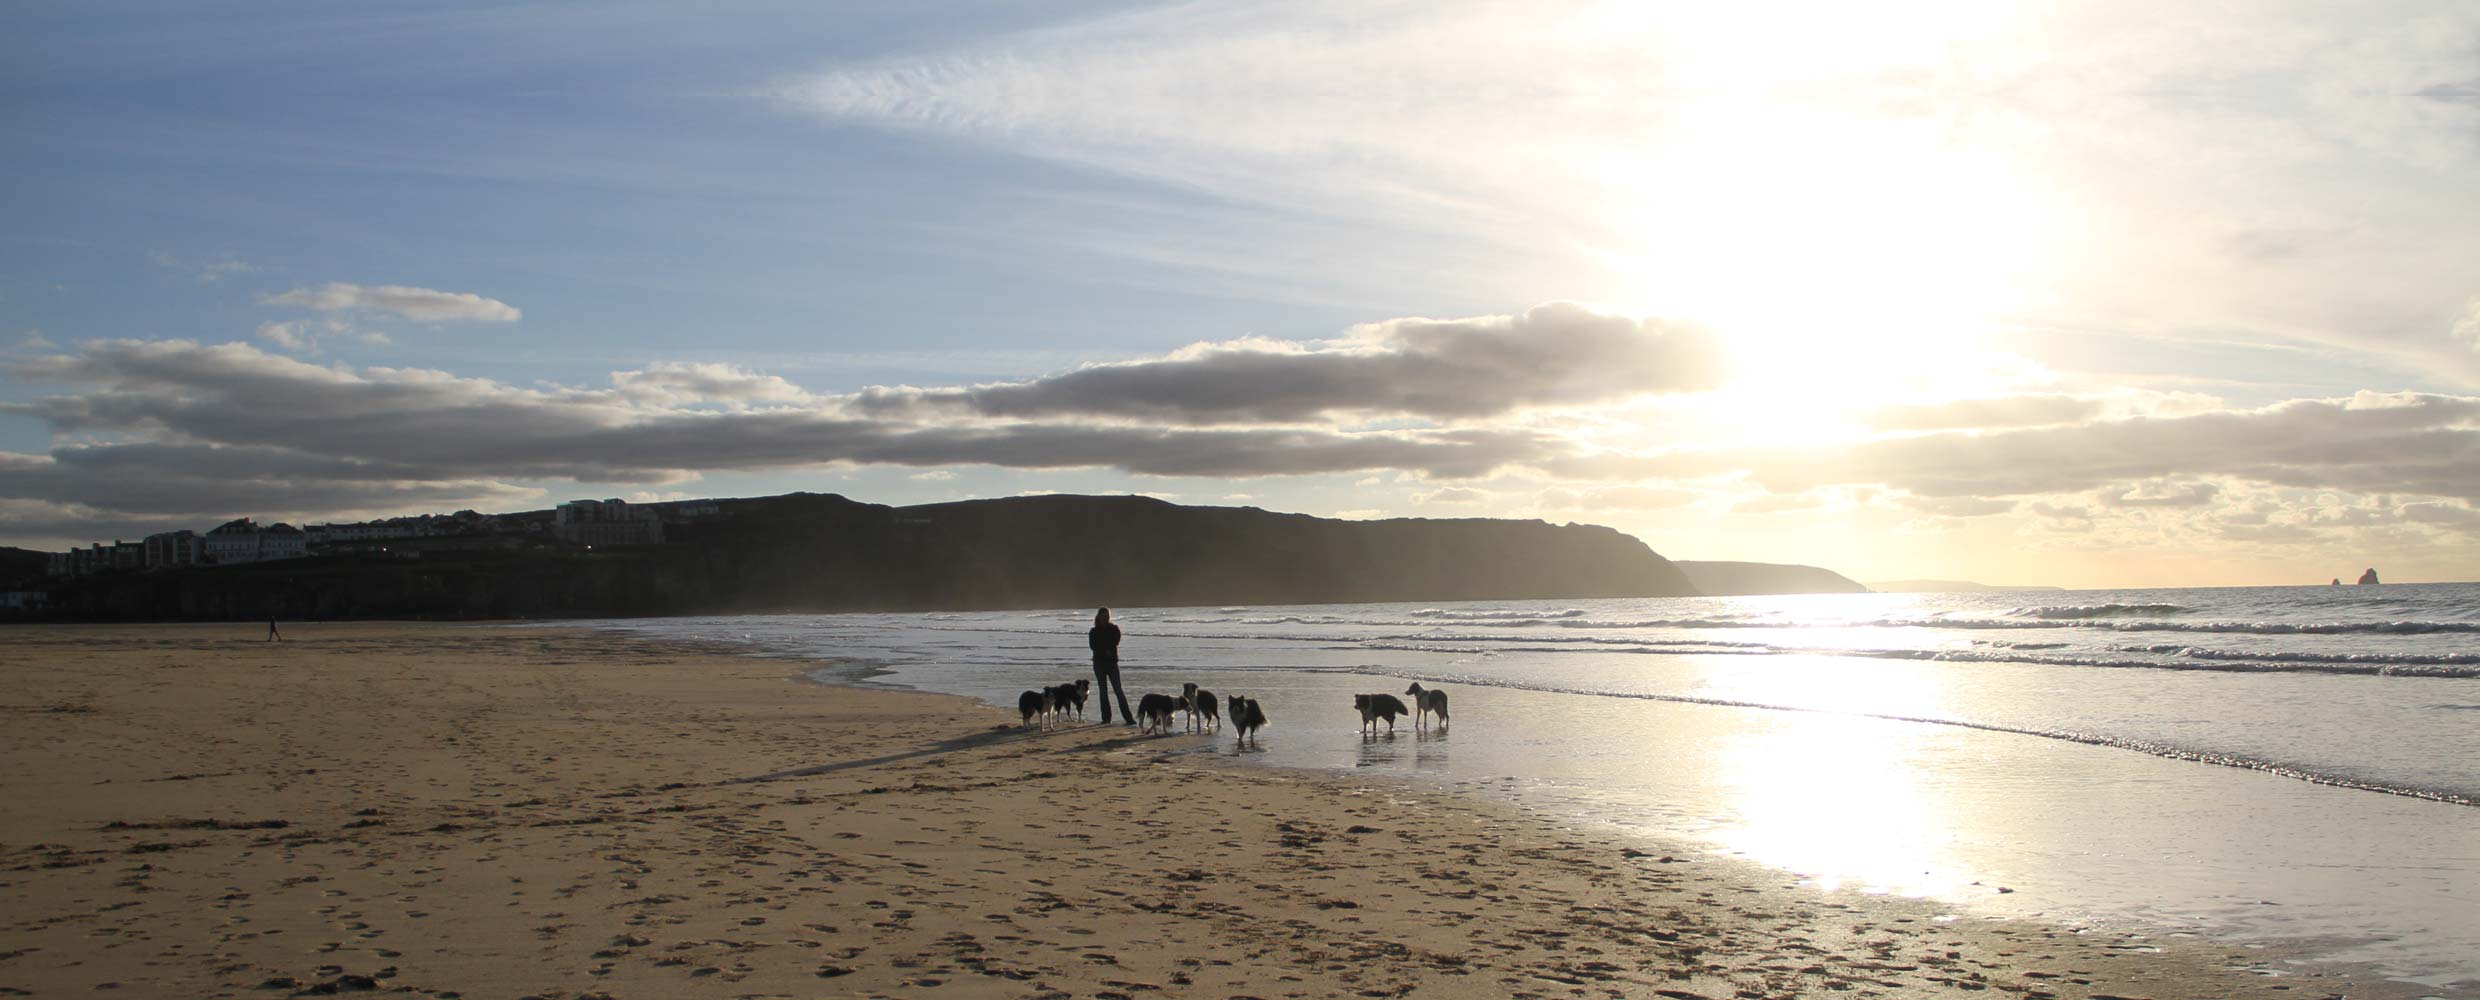 Alison Roets with her Border Collies on the Beach in Newquay, Cornwall